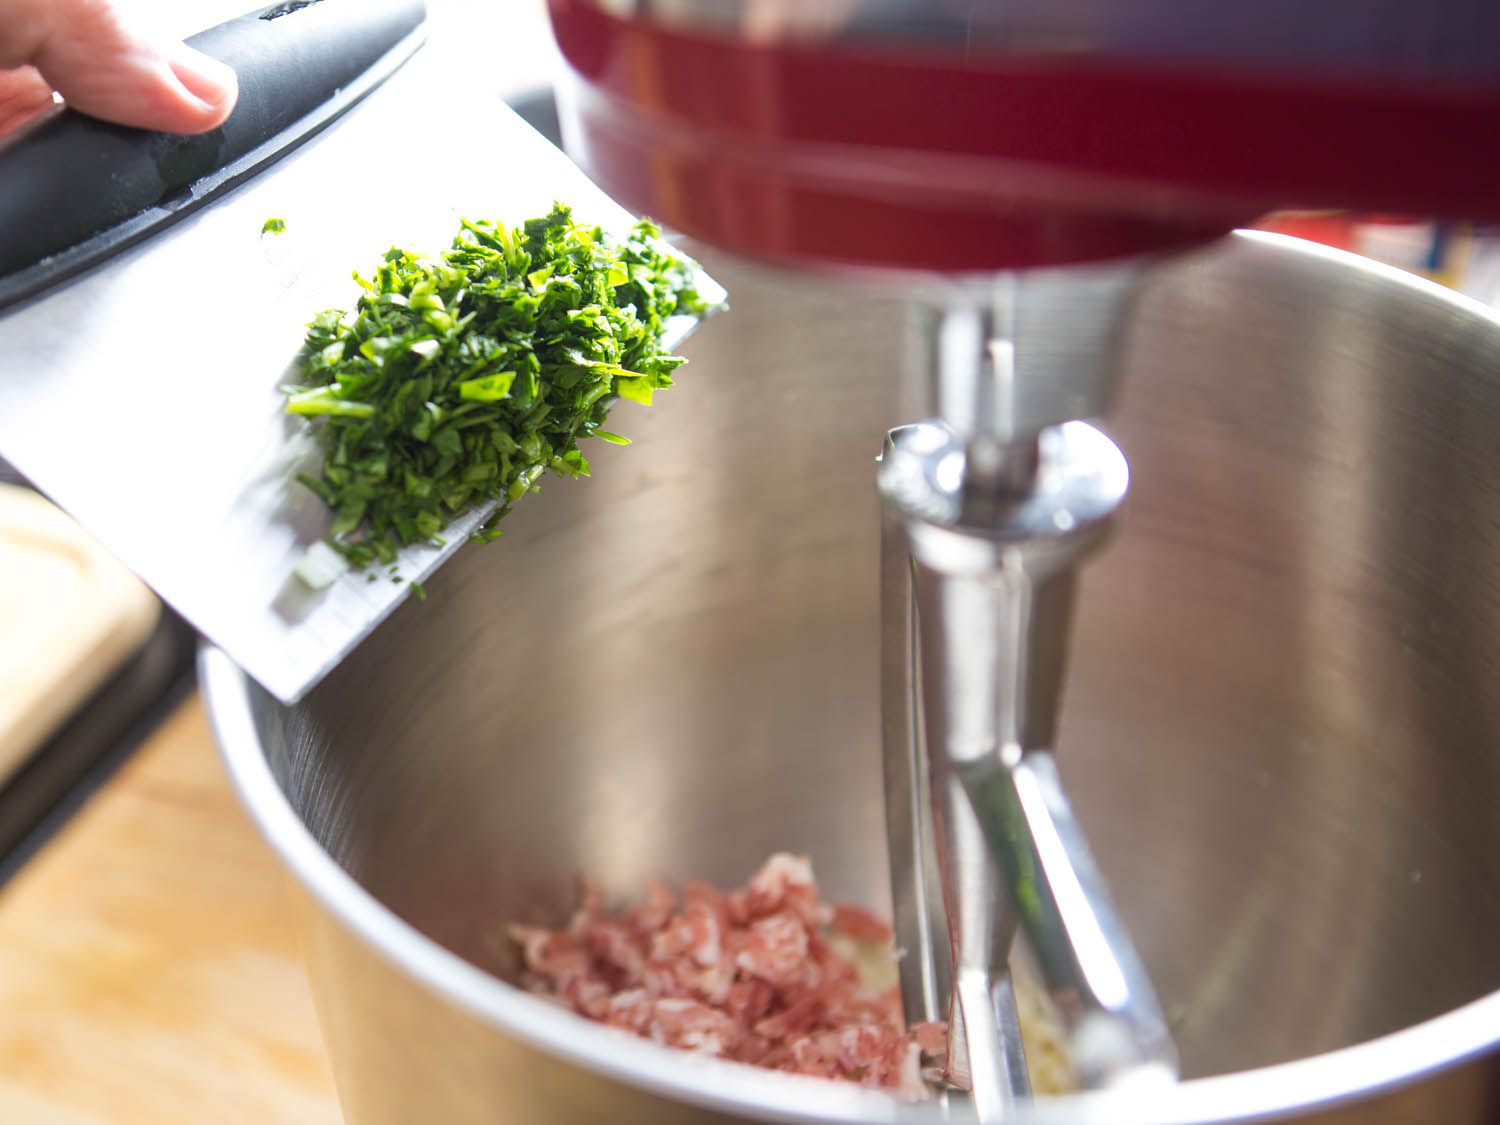 Adding chopped parsley to bowl of stand mixer for meatballs.